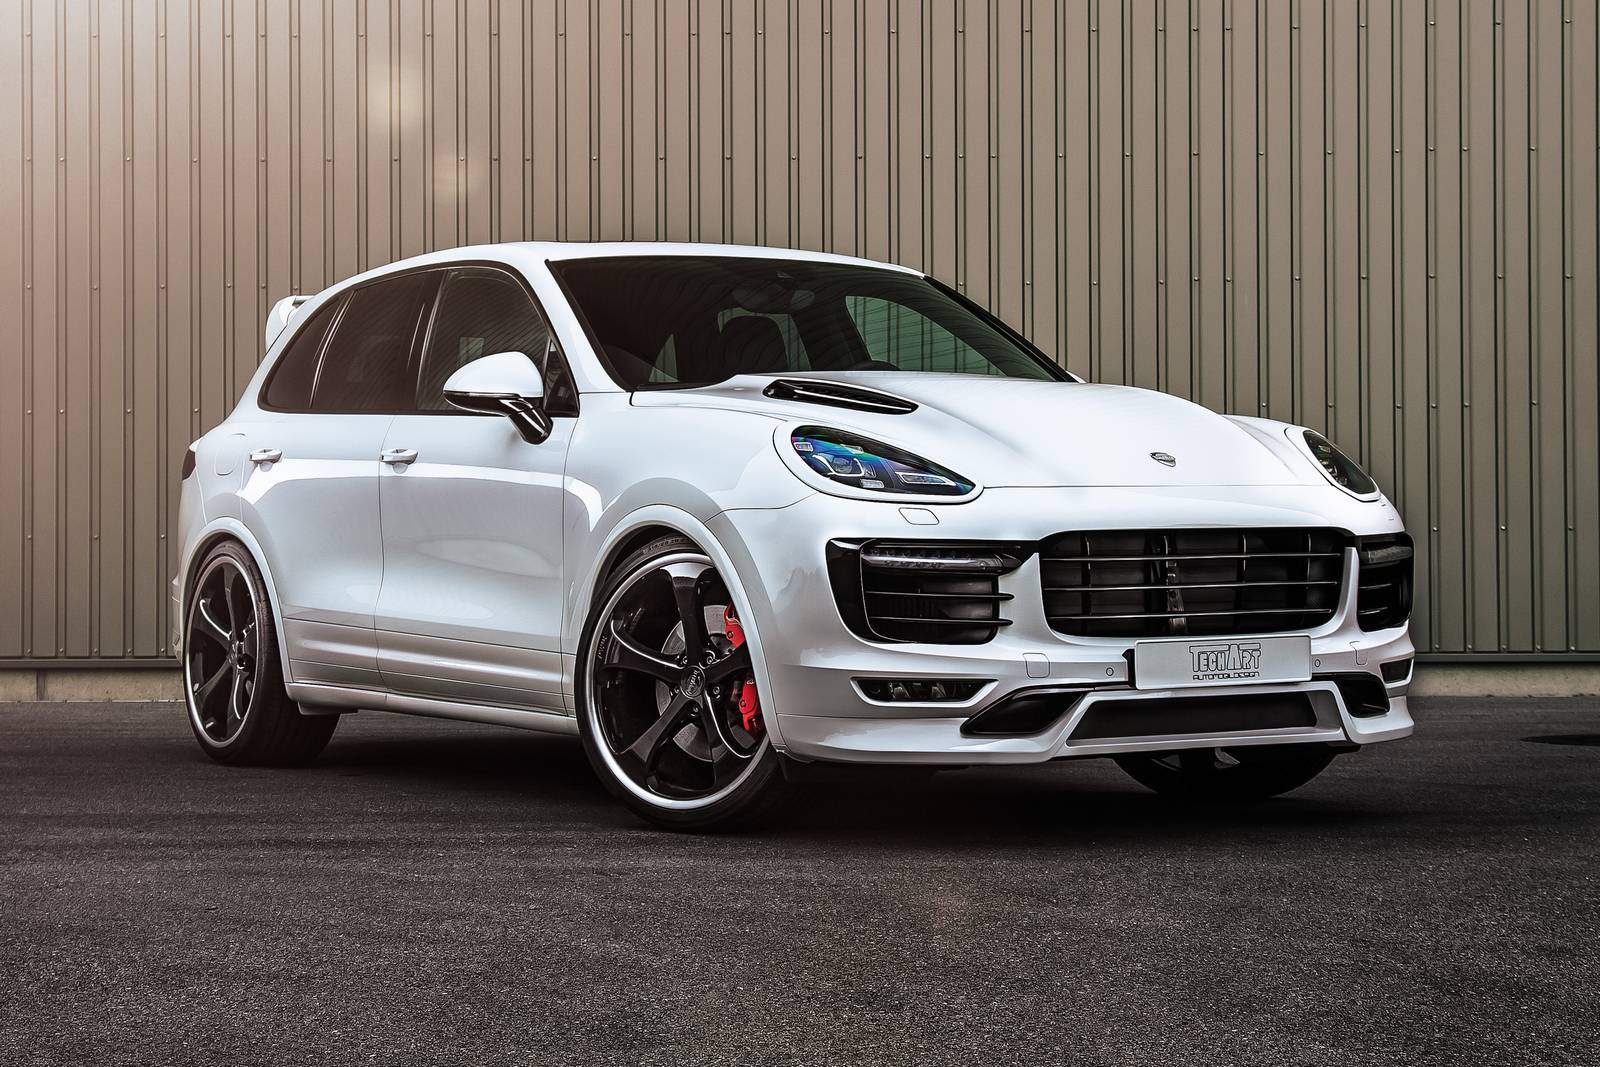 Techart Upgrades Porsche Cayenne Turbo To 700hp Gtspirit